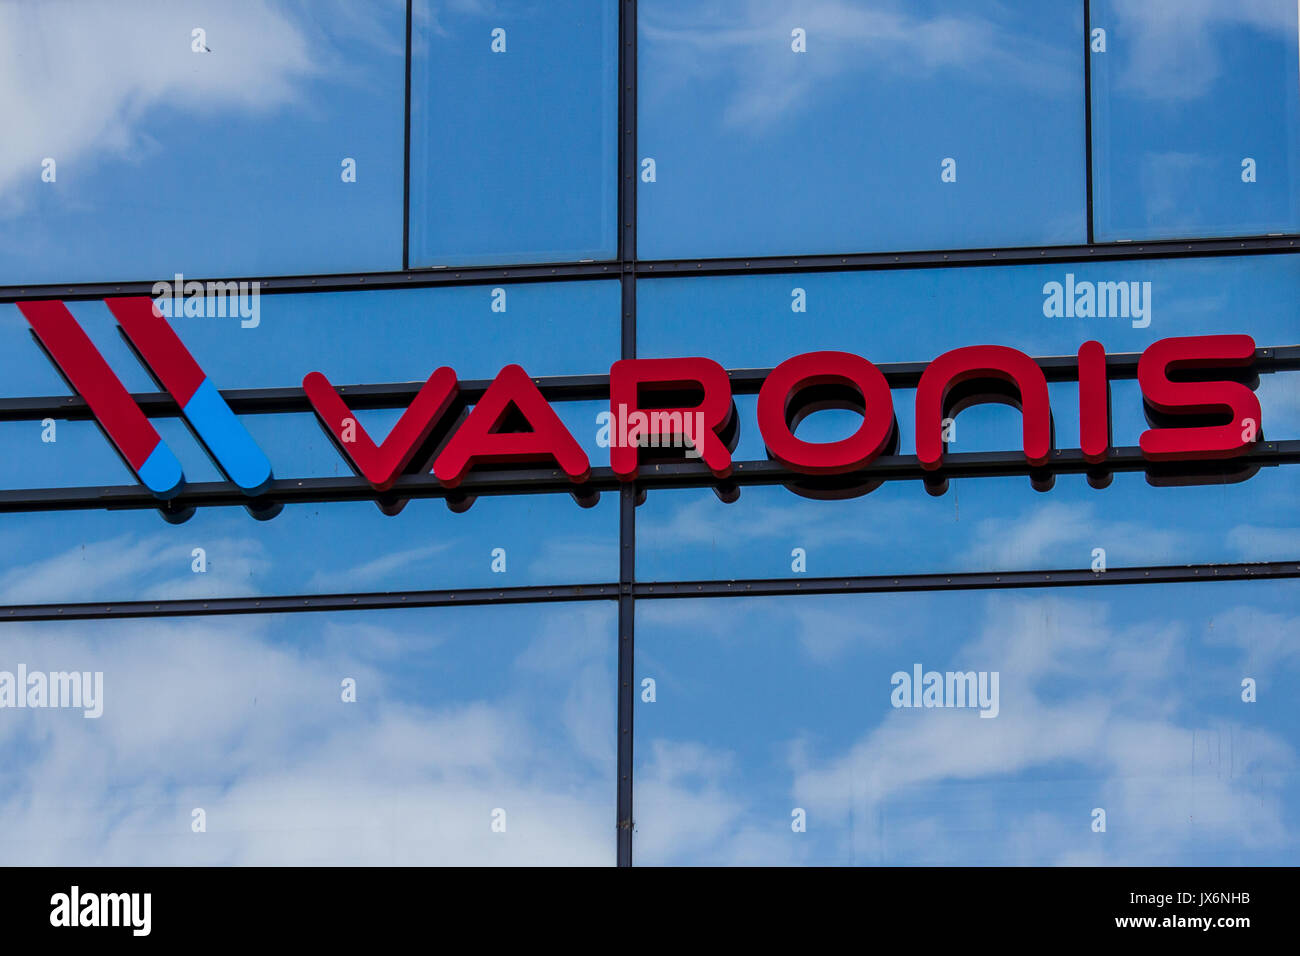 March 31, 2017, Herzliya, Israel. Varonis corporate headquarters office. Varonis developed a security software platform to track, visualize and protec - Stock Image